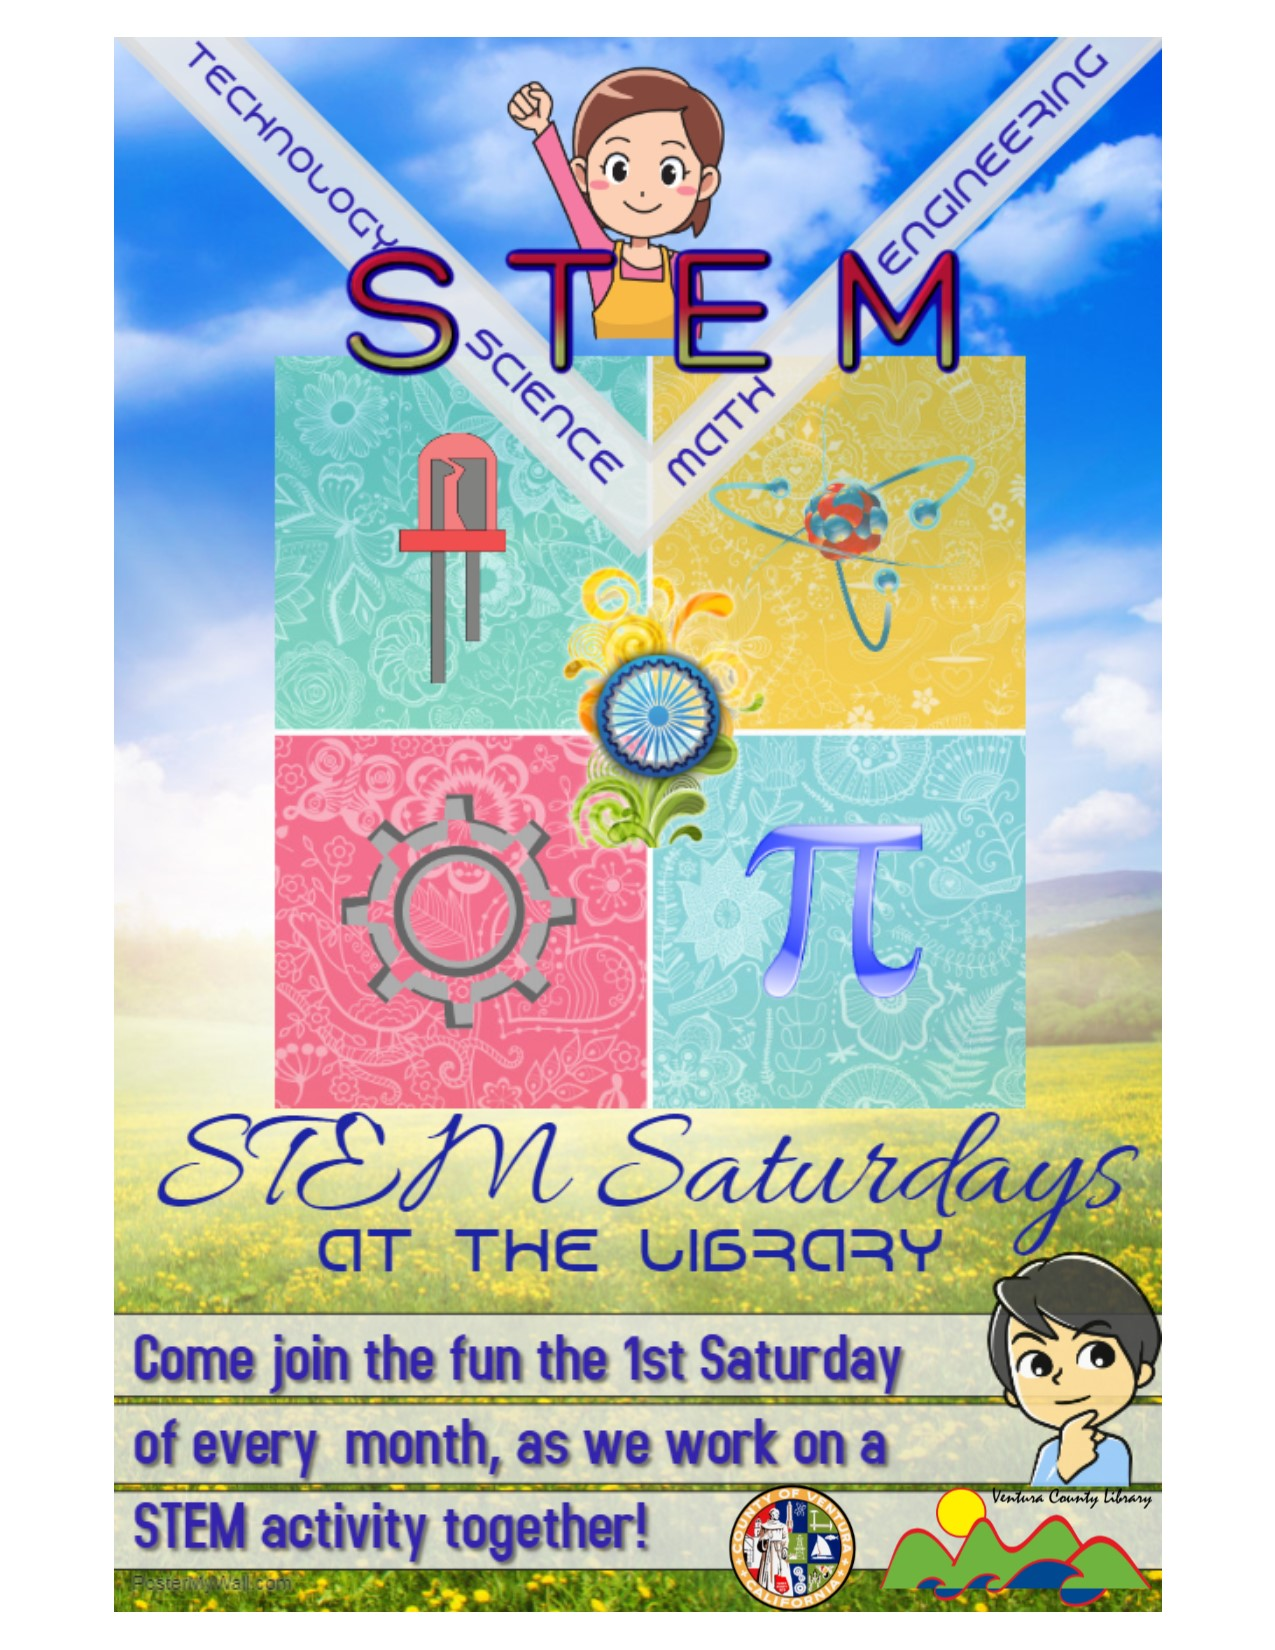 STEM Saturday flyer at Fillmore Library